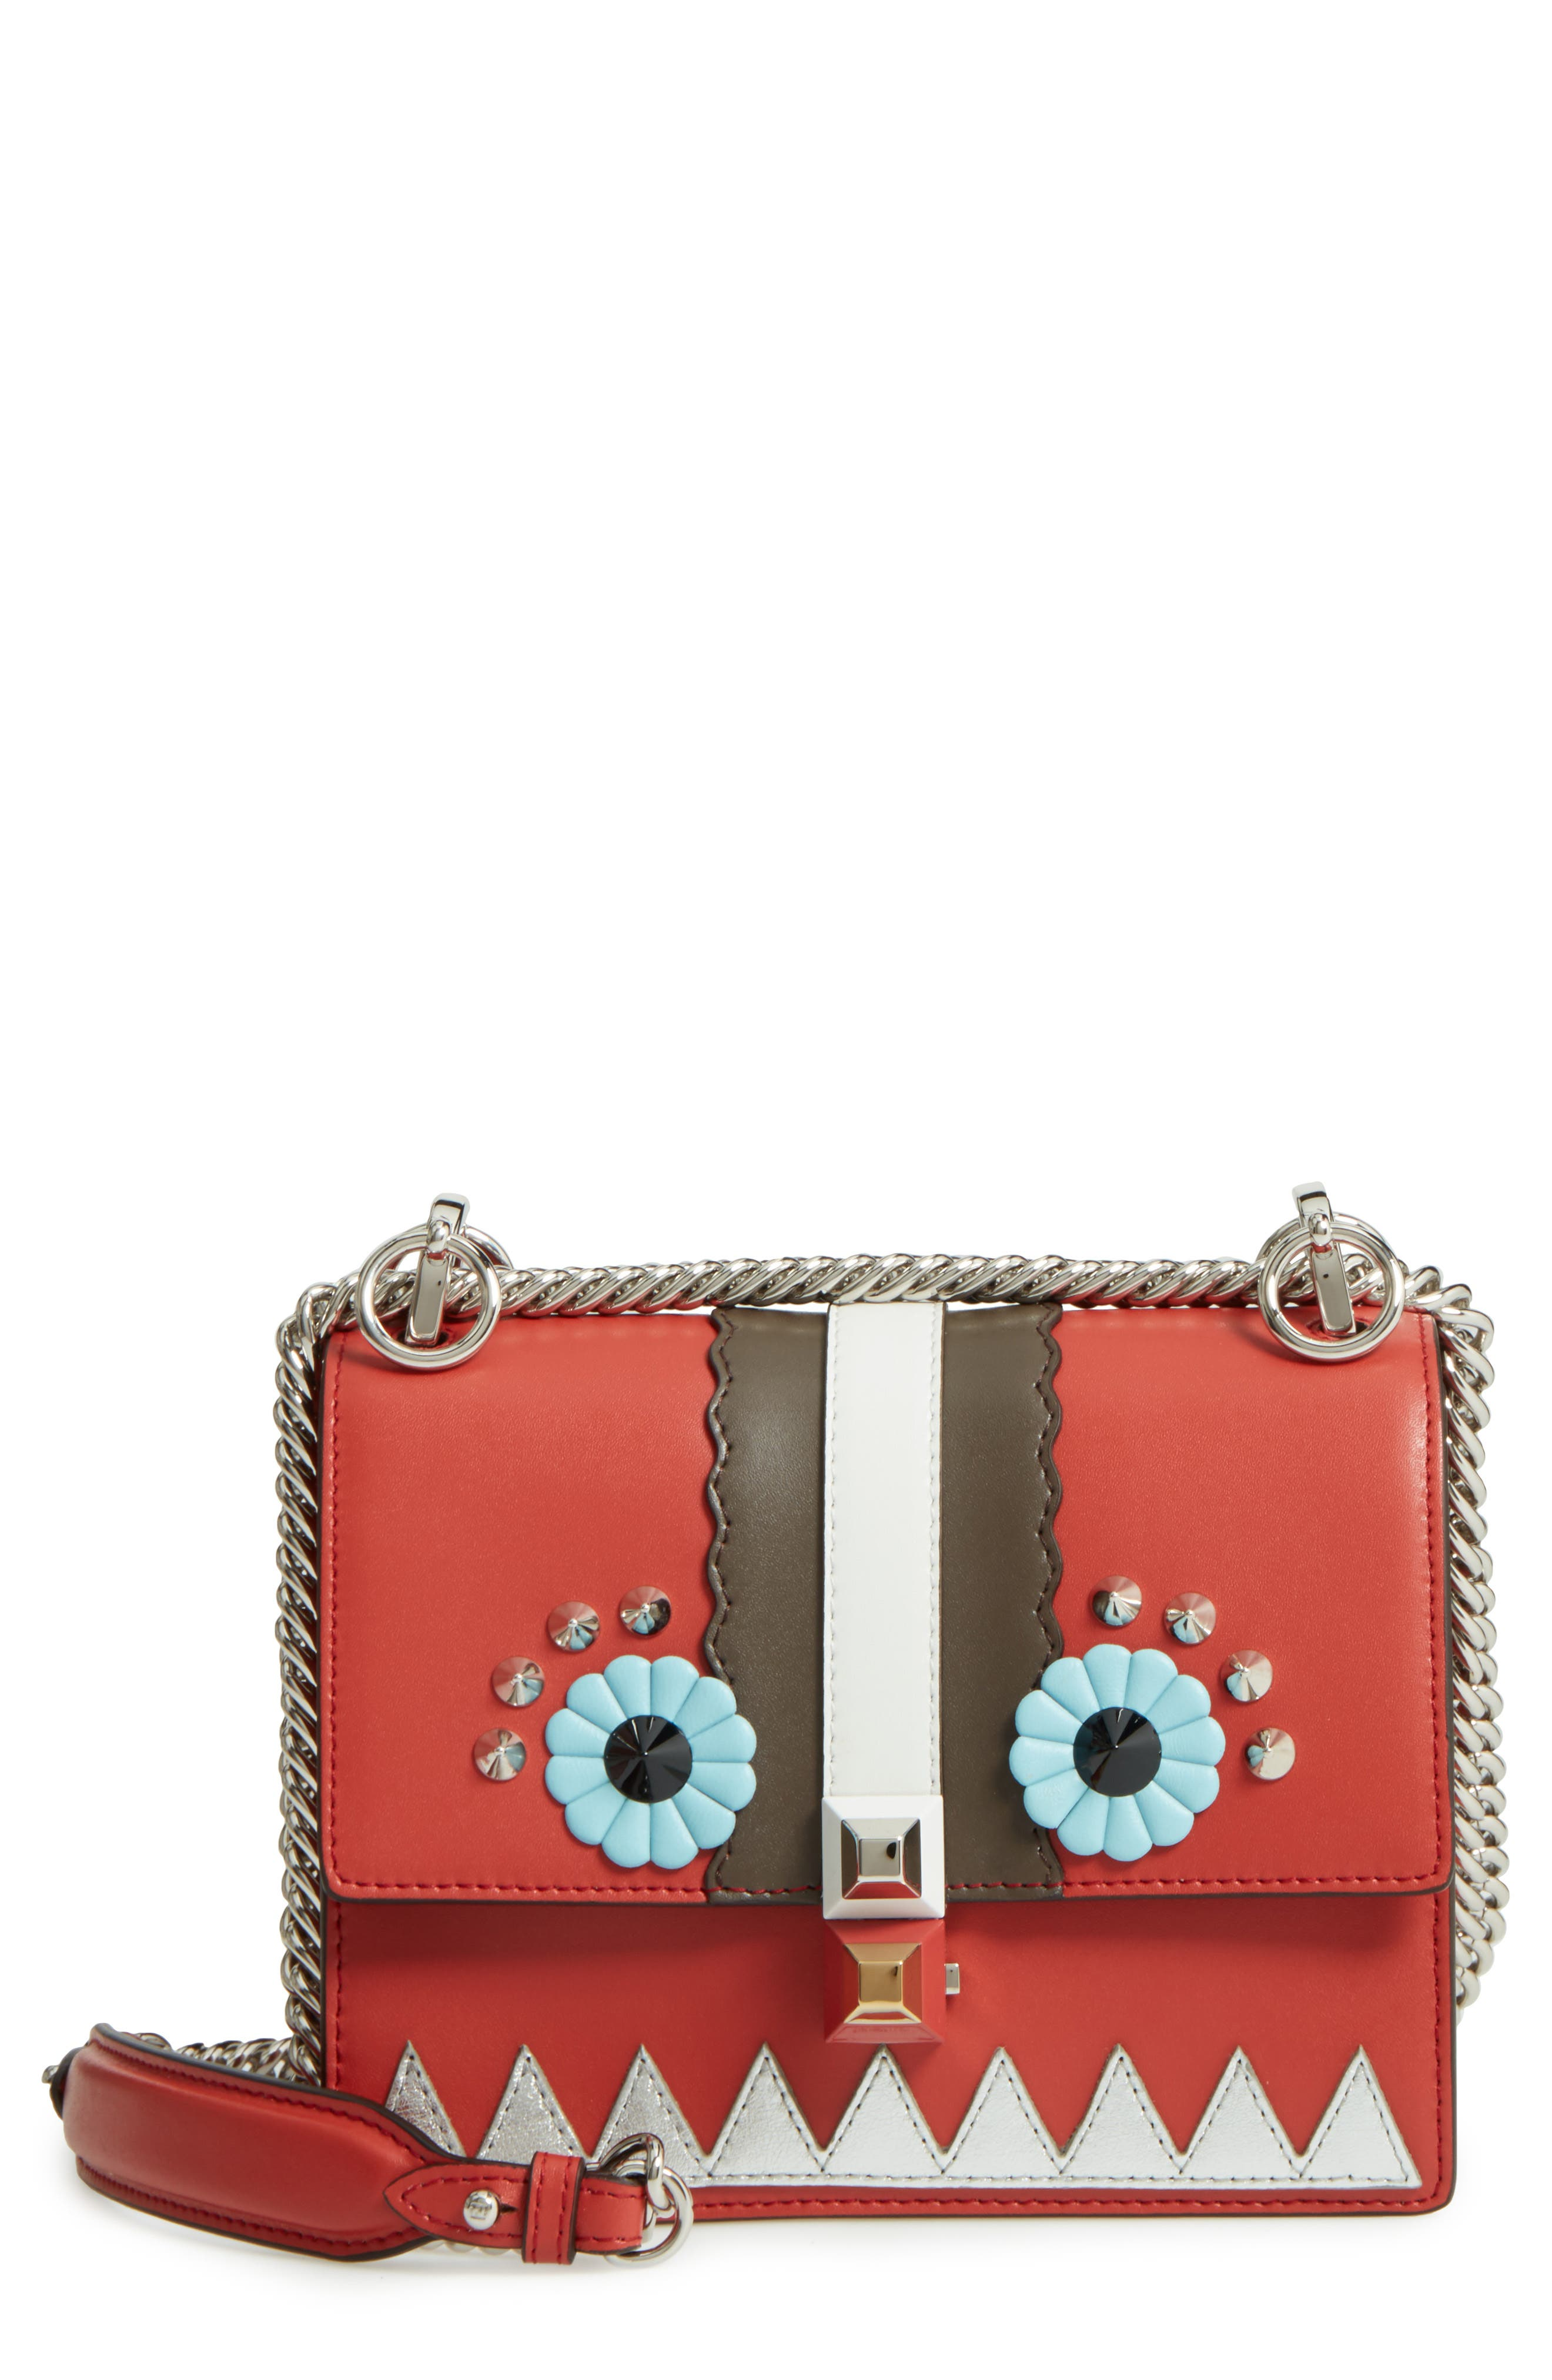 Mini Kan I Faces Leather Shoulder Bag,                             Main thumbnail 1, color,                             Bloody Mary